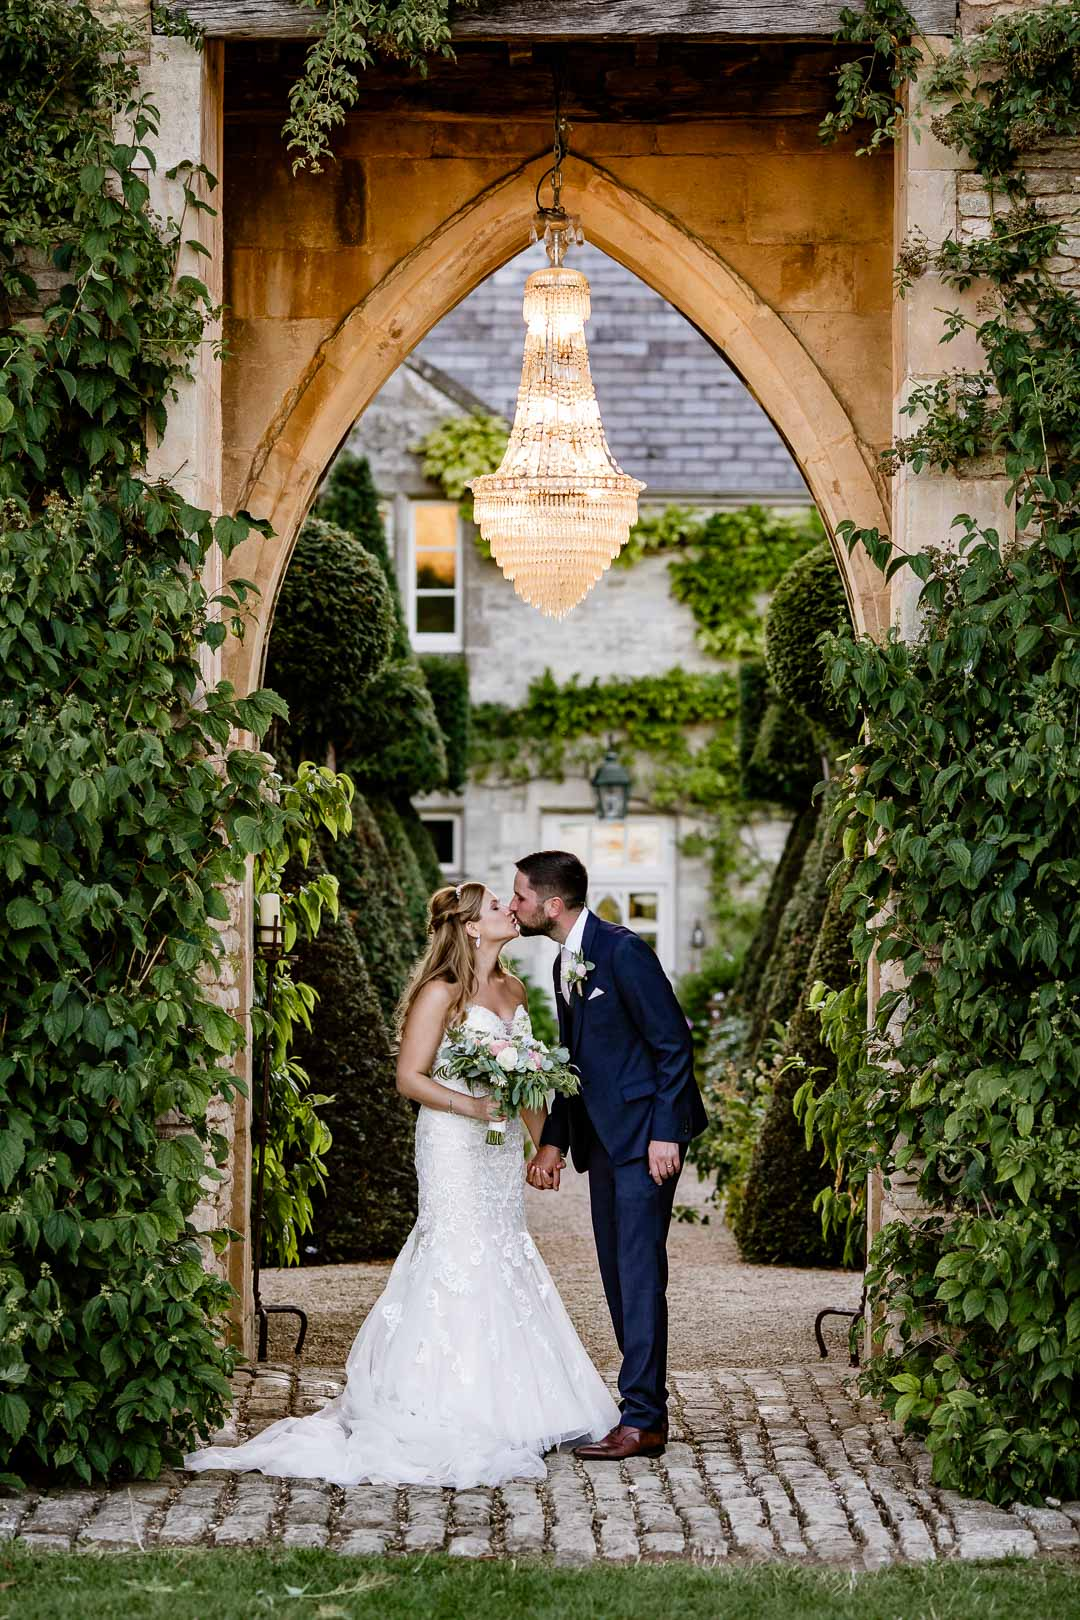 Kiss under the arch at The Lost Orangery